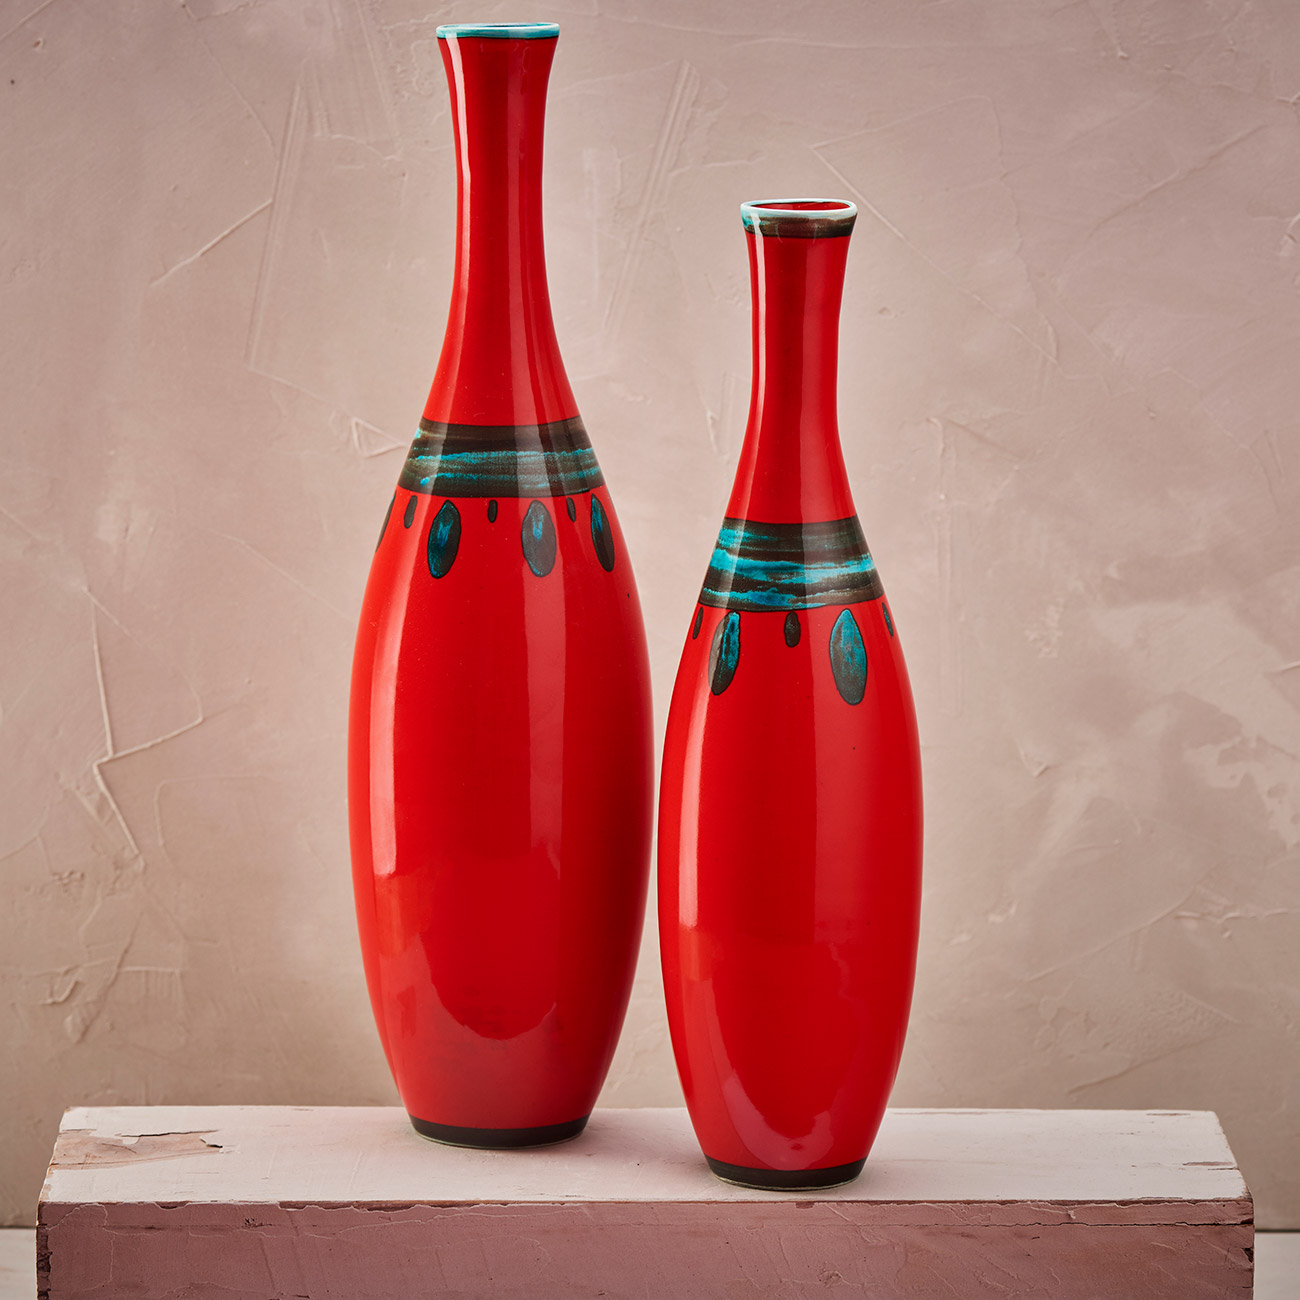 Set Two Red Bottles - 9 x 35/8 x 30 cm 1